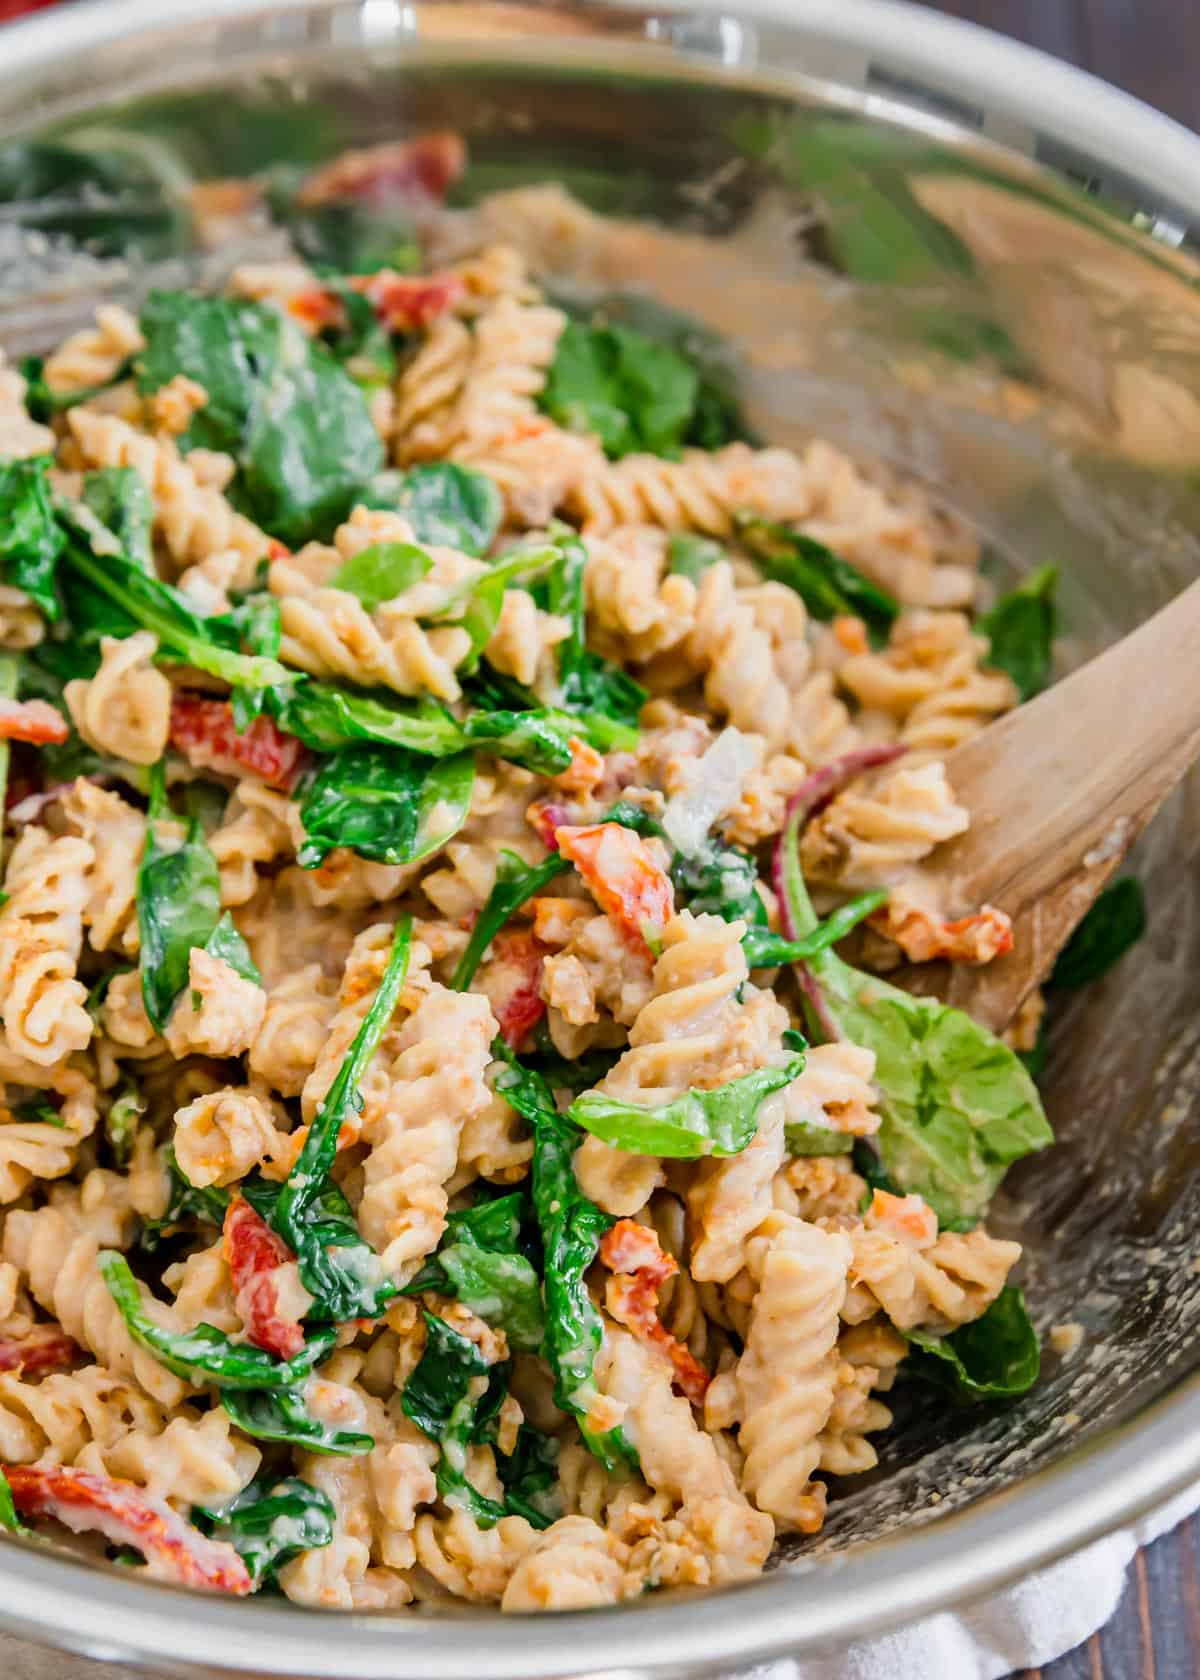 Baby spinach greens add a nice pop of color to this sun-dried tomato creamy white bean pasta recipe.